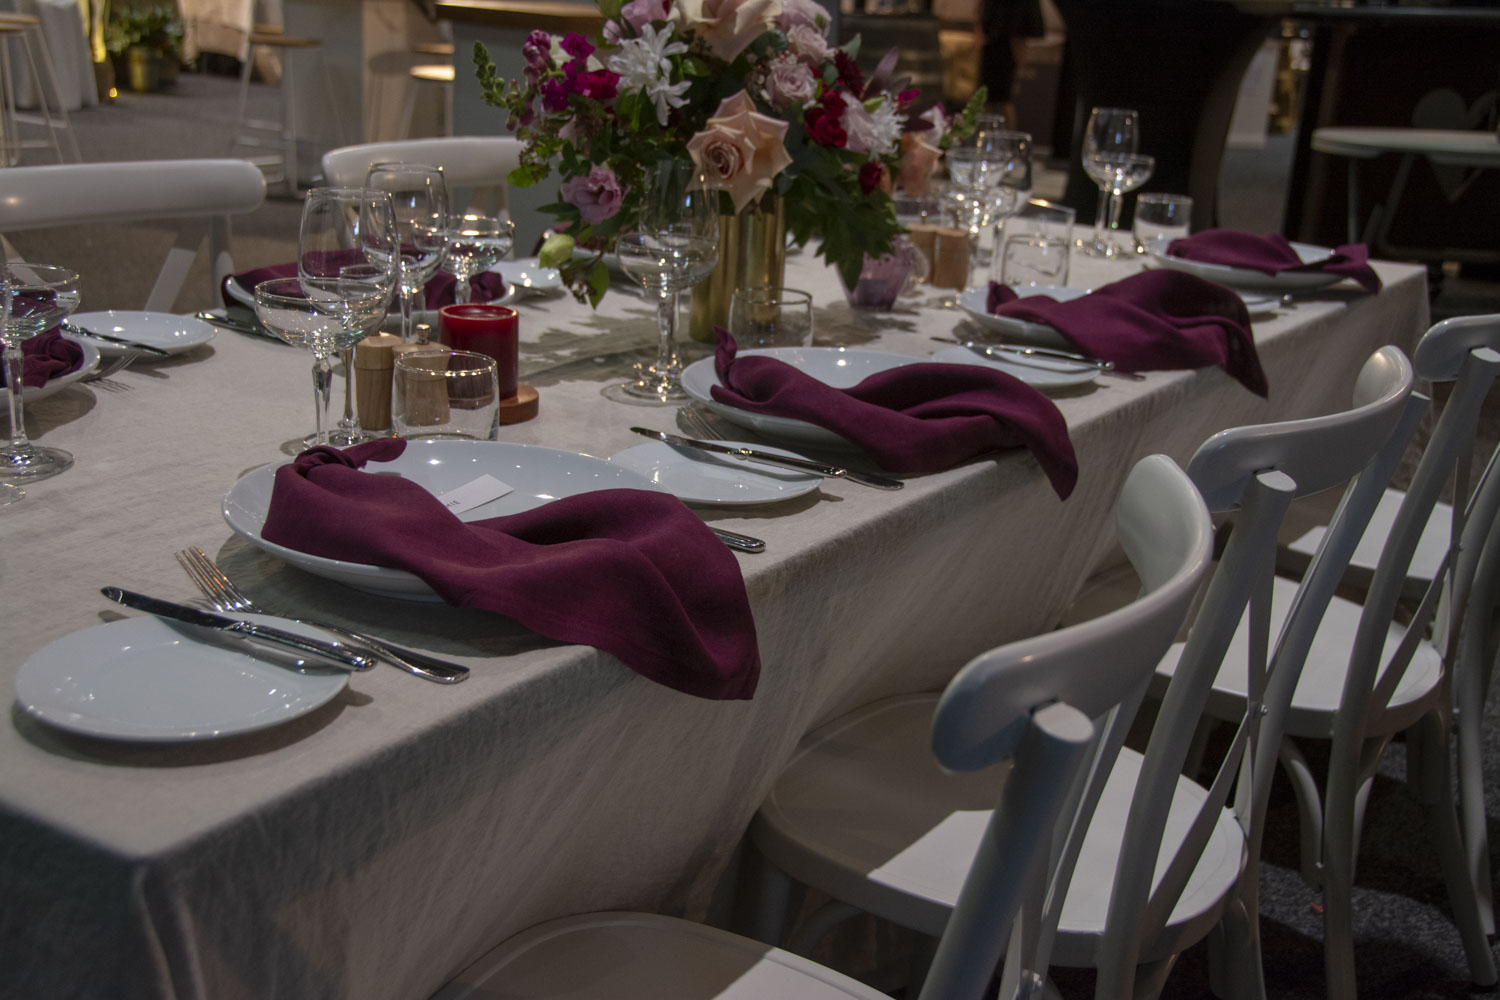 Oatmeal table with maroon napkins